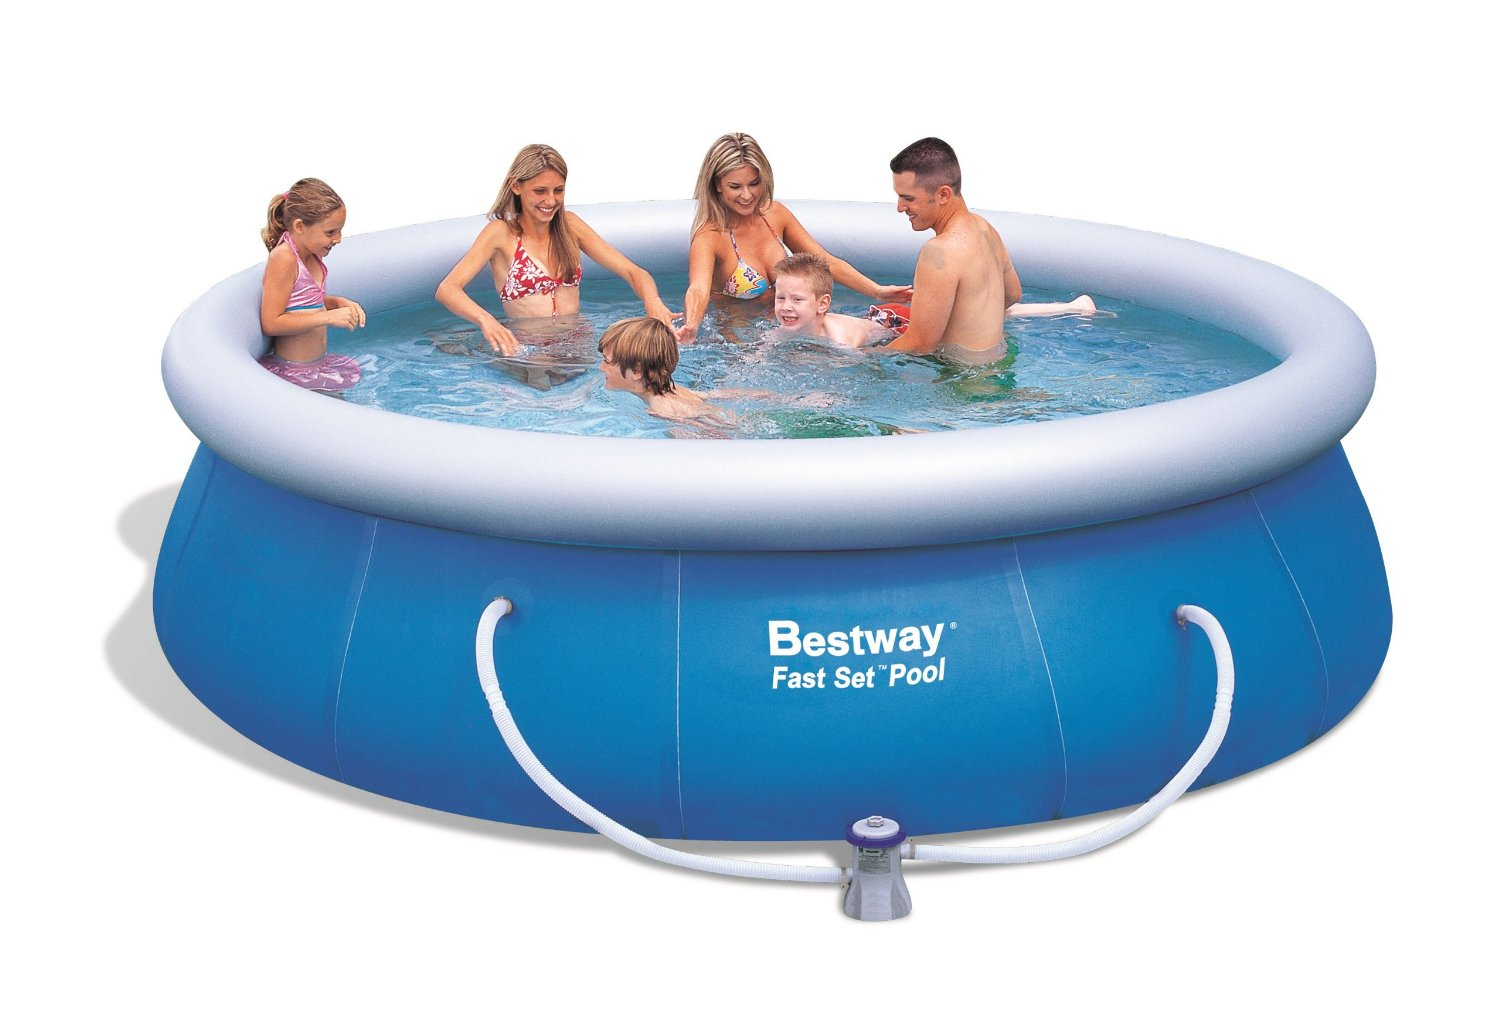 bestway fast set pool review pools and tubs. Black Bedroom Furniture Sets. Home Design Ideas